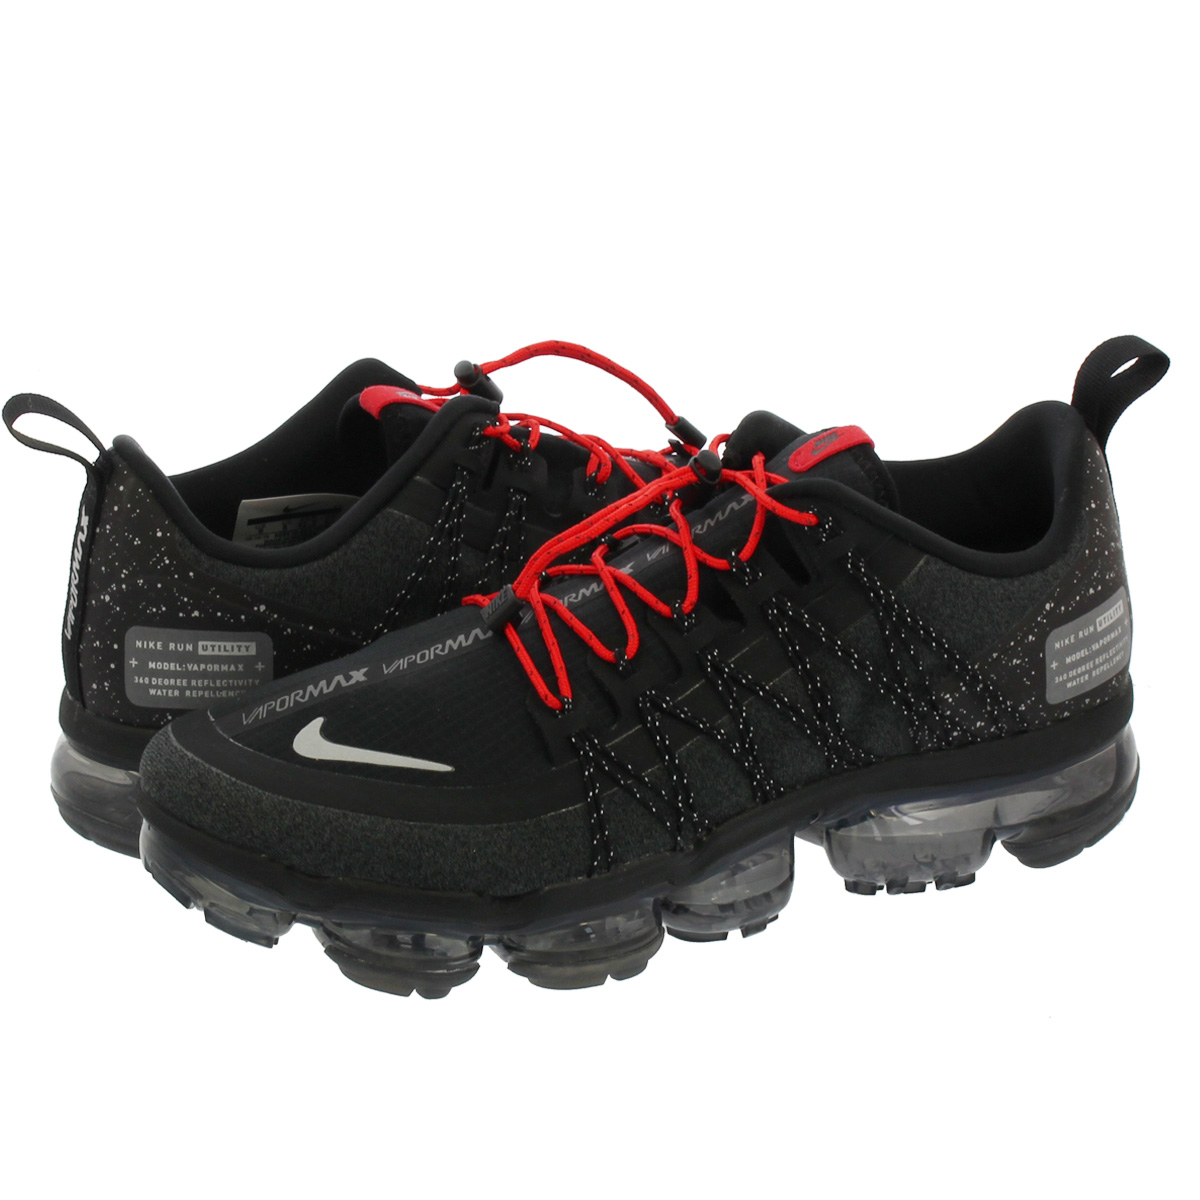 d85c2675e8 NIKE AIR VAPORMAX RUN UTILITY Nike vapor max orchid utility BLACK/REFLECT  SILVER/ANTHRACITE ...